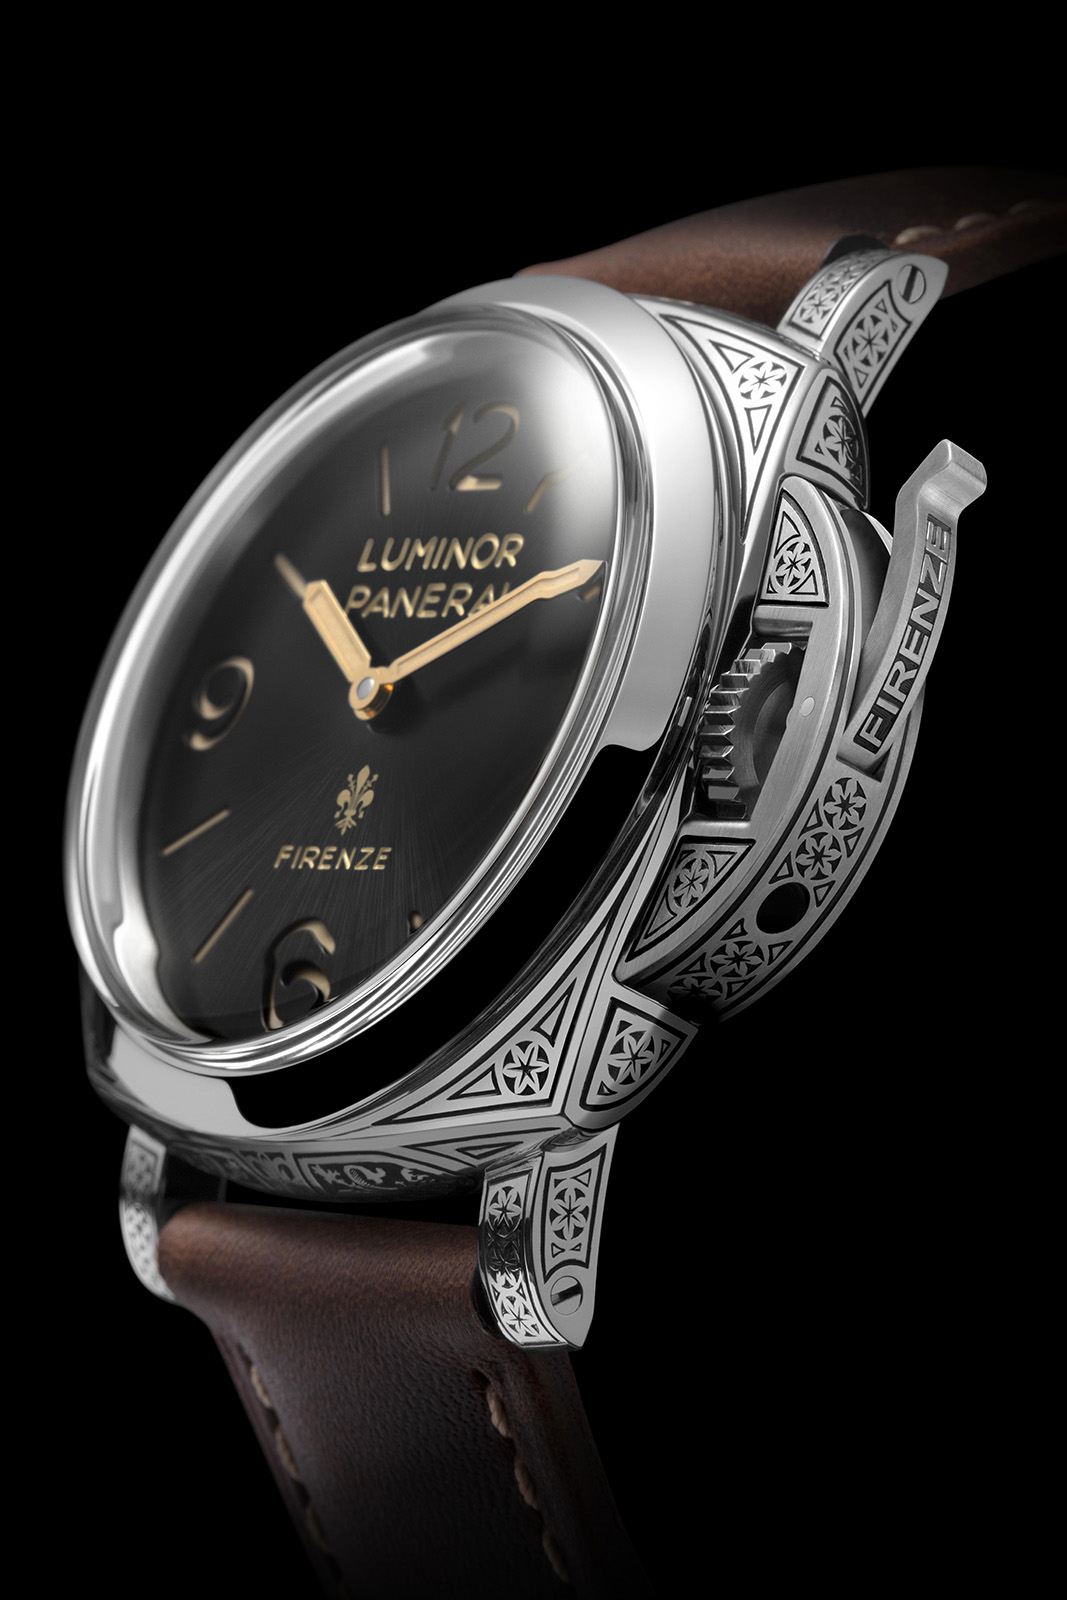 Panerai Luminor 1950 Firenze